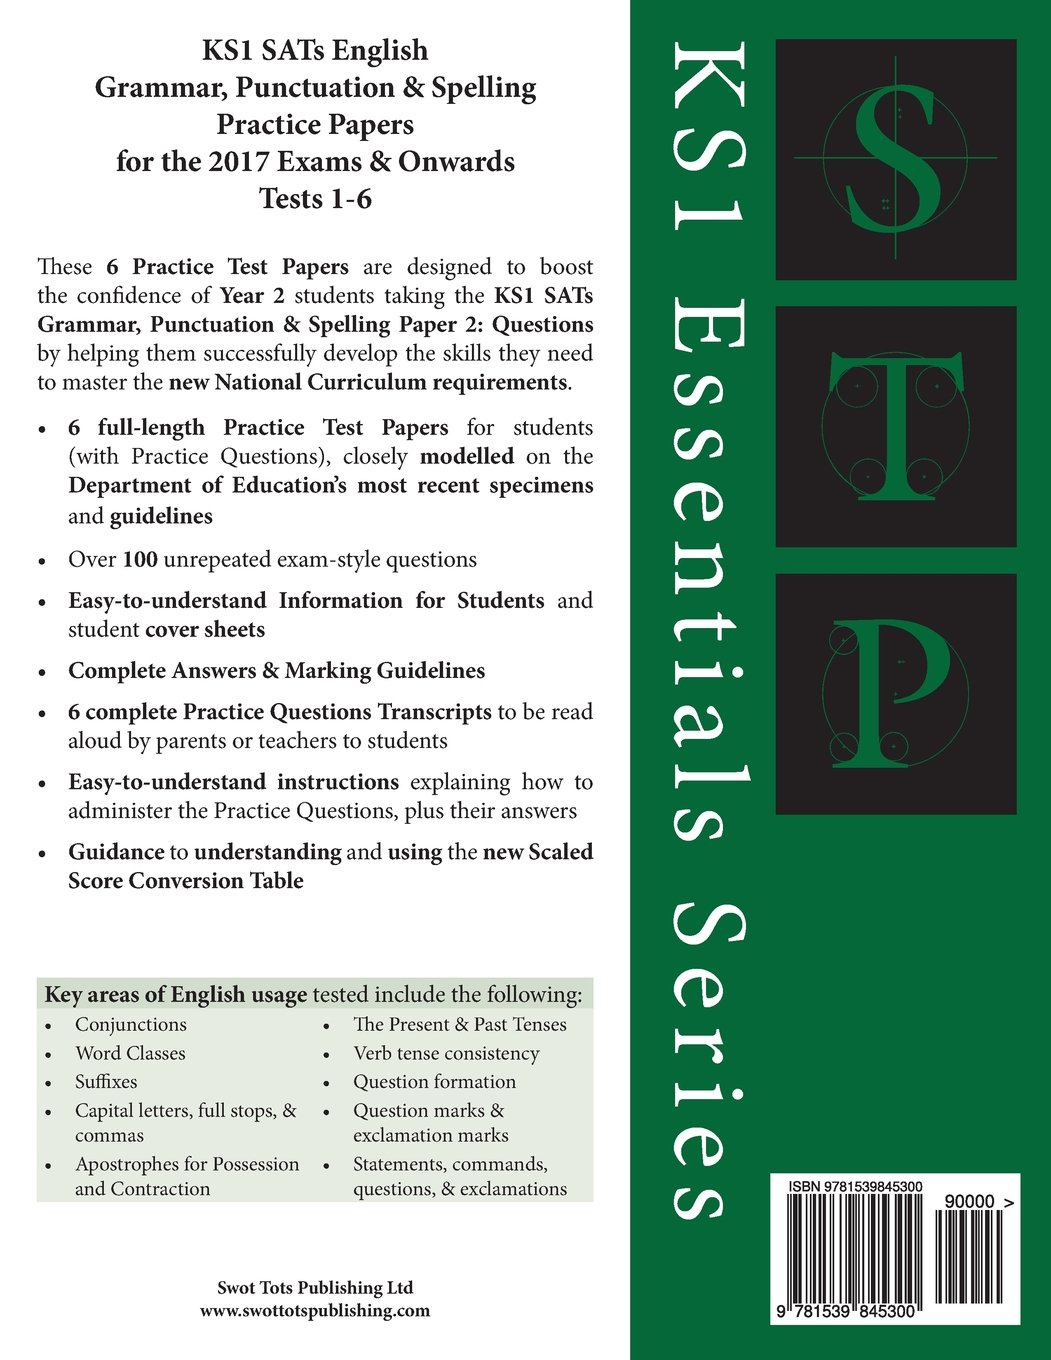 Ks1 sats english grammar punctuation spelling practice papers for the 2017 exams onwards tests 1 6 year 2 ages 6 7 volume 2 ks1 essentials